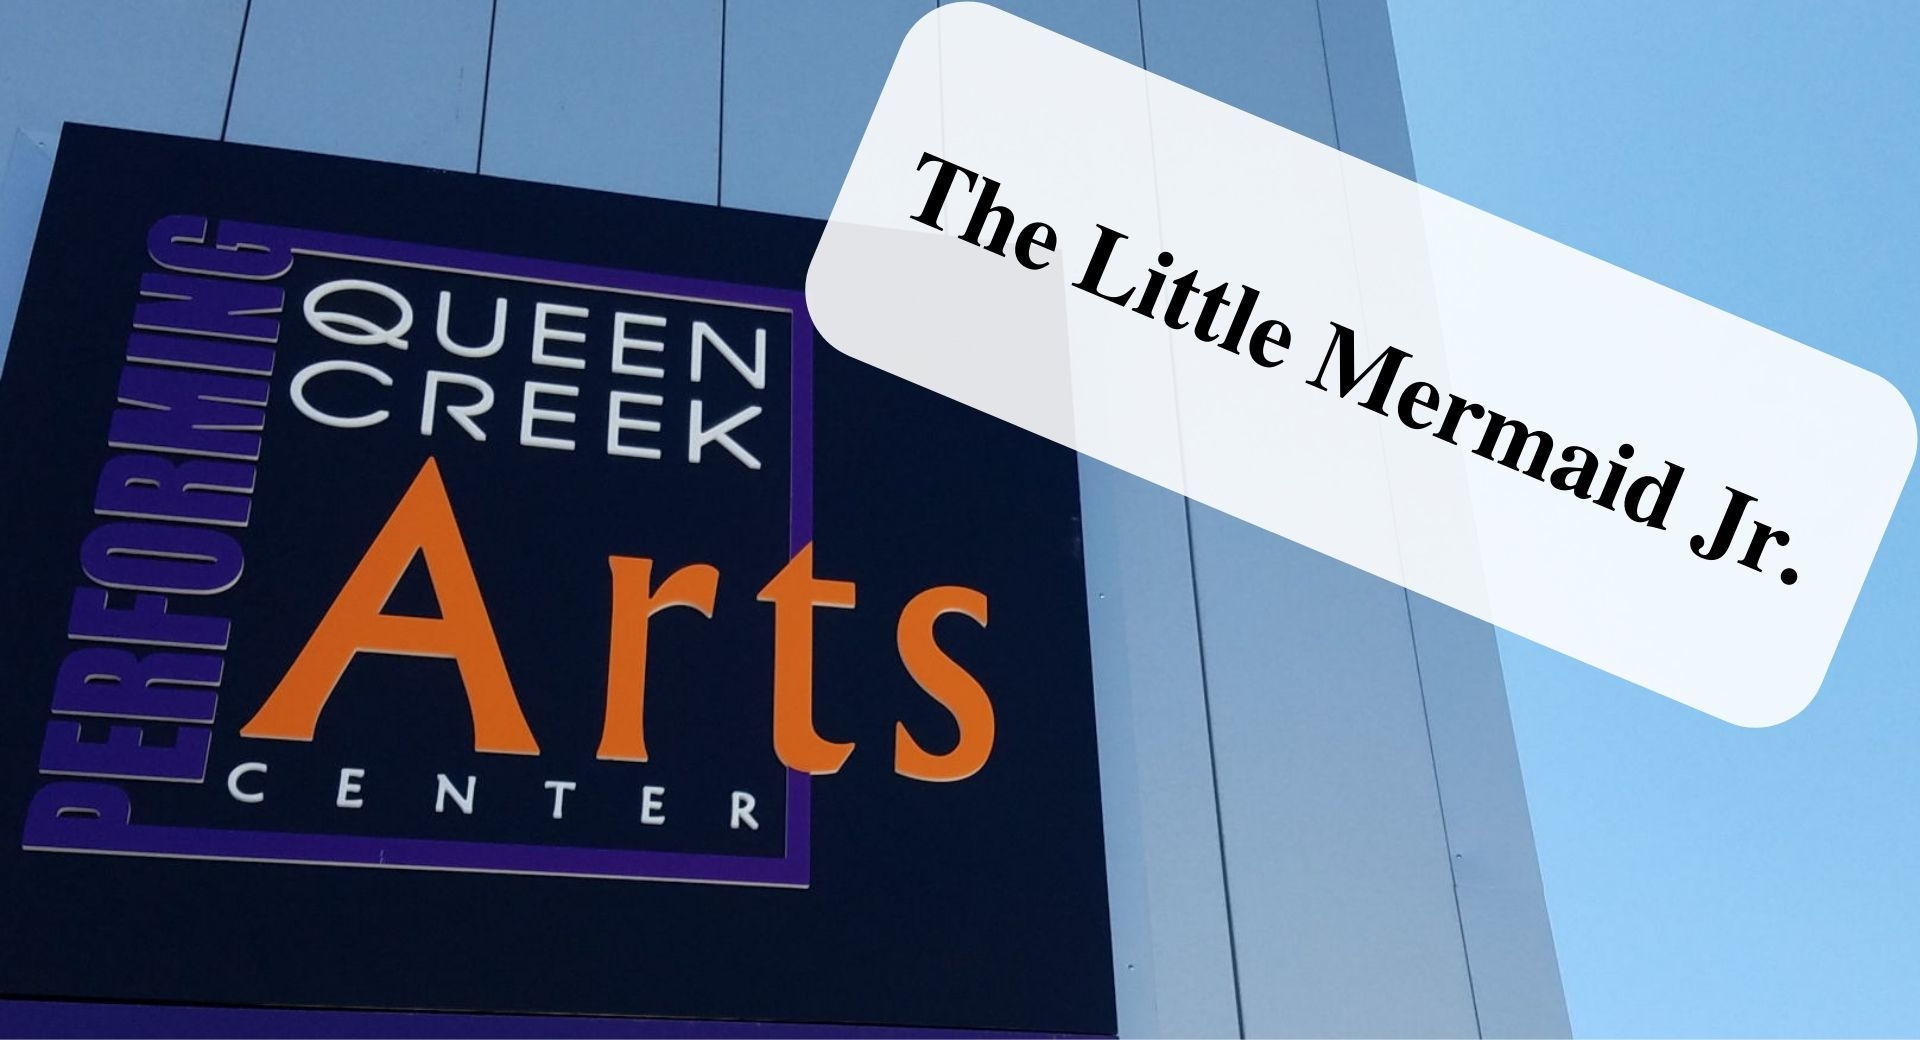 The Little Mermaid Jr. Performing Arts, Forever Sabbatical